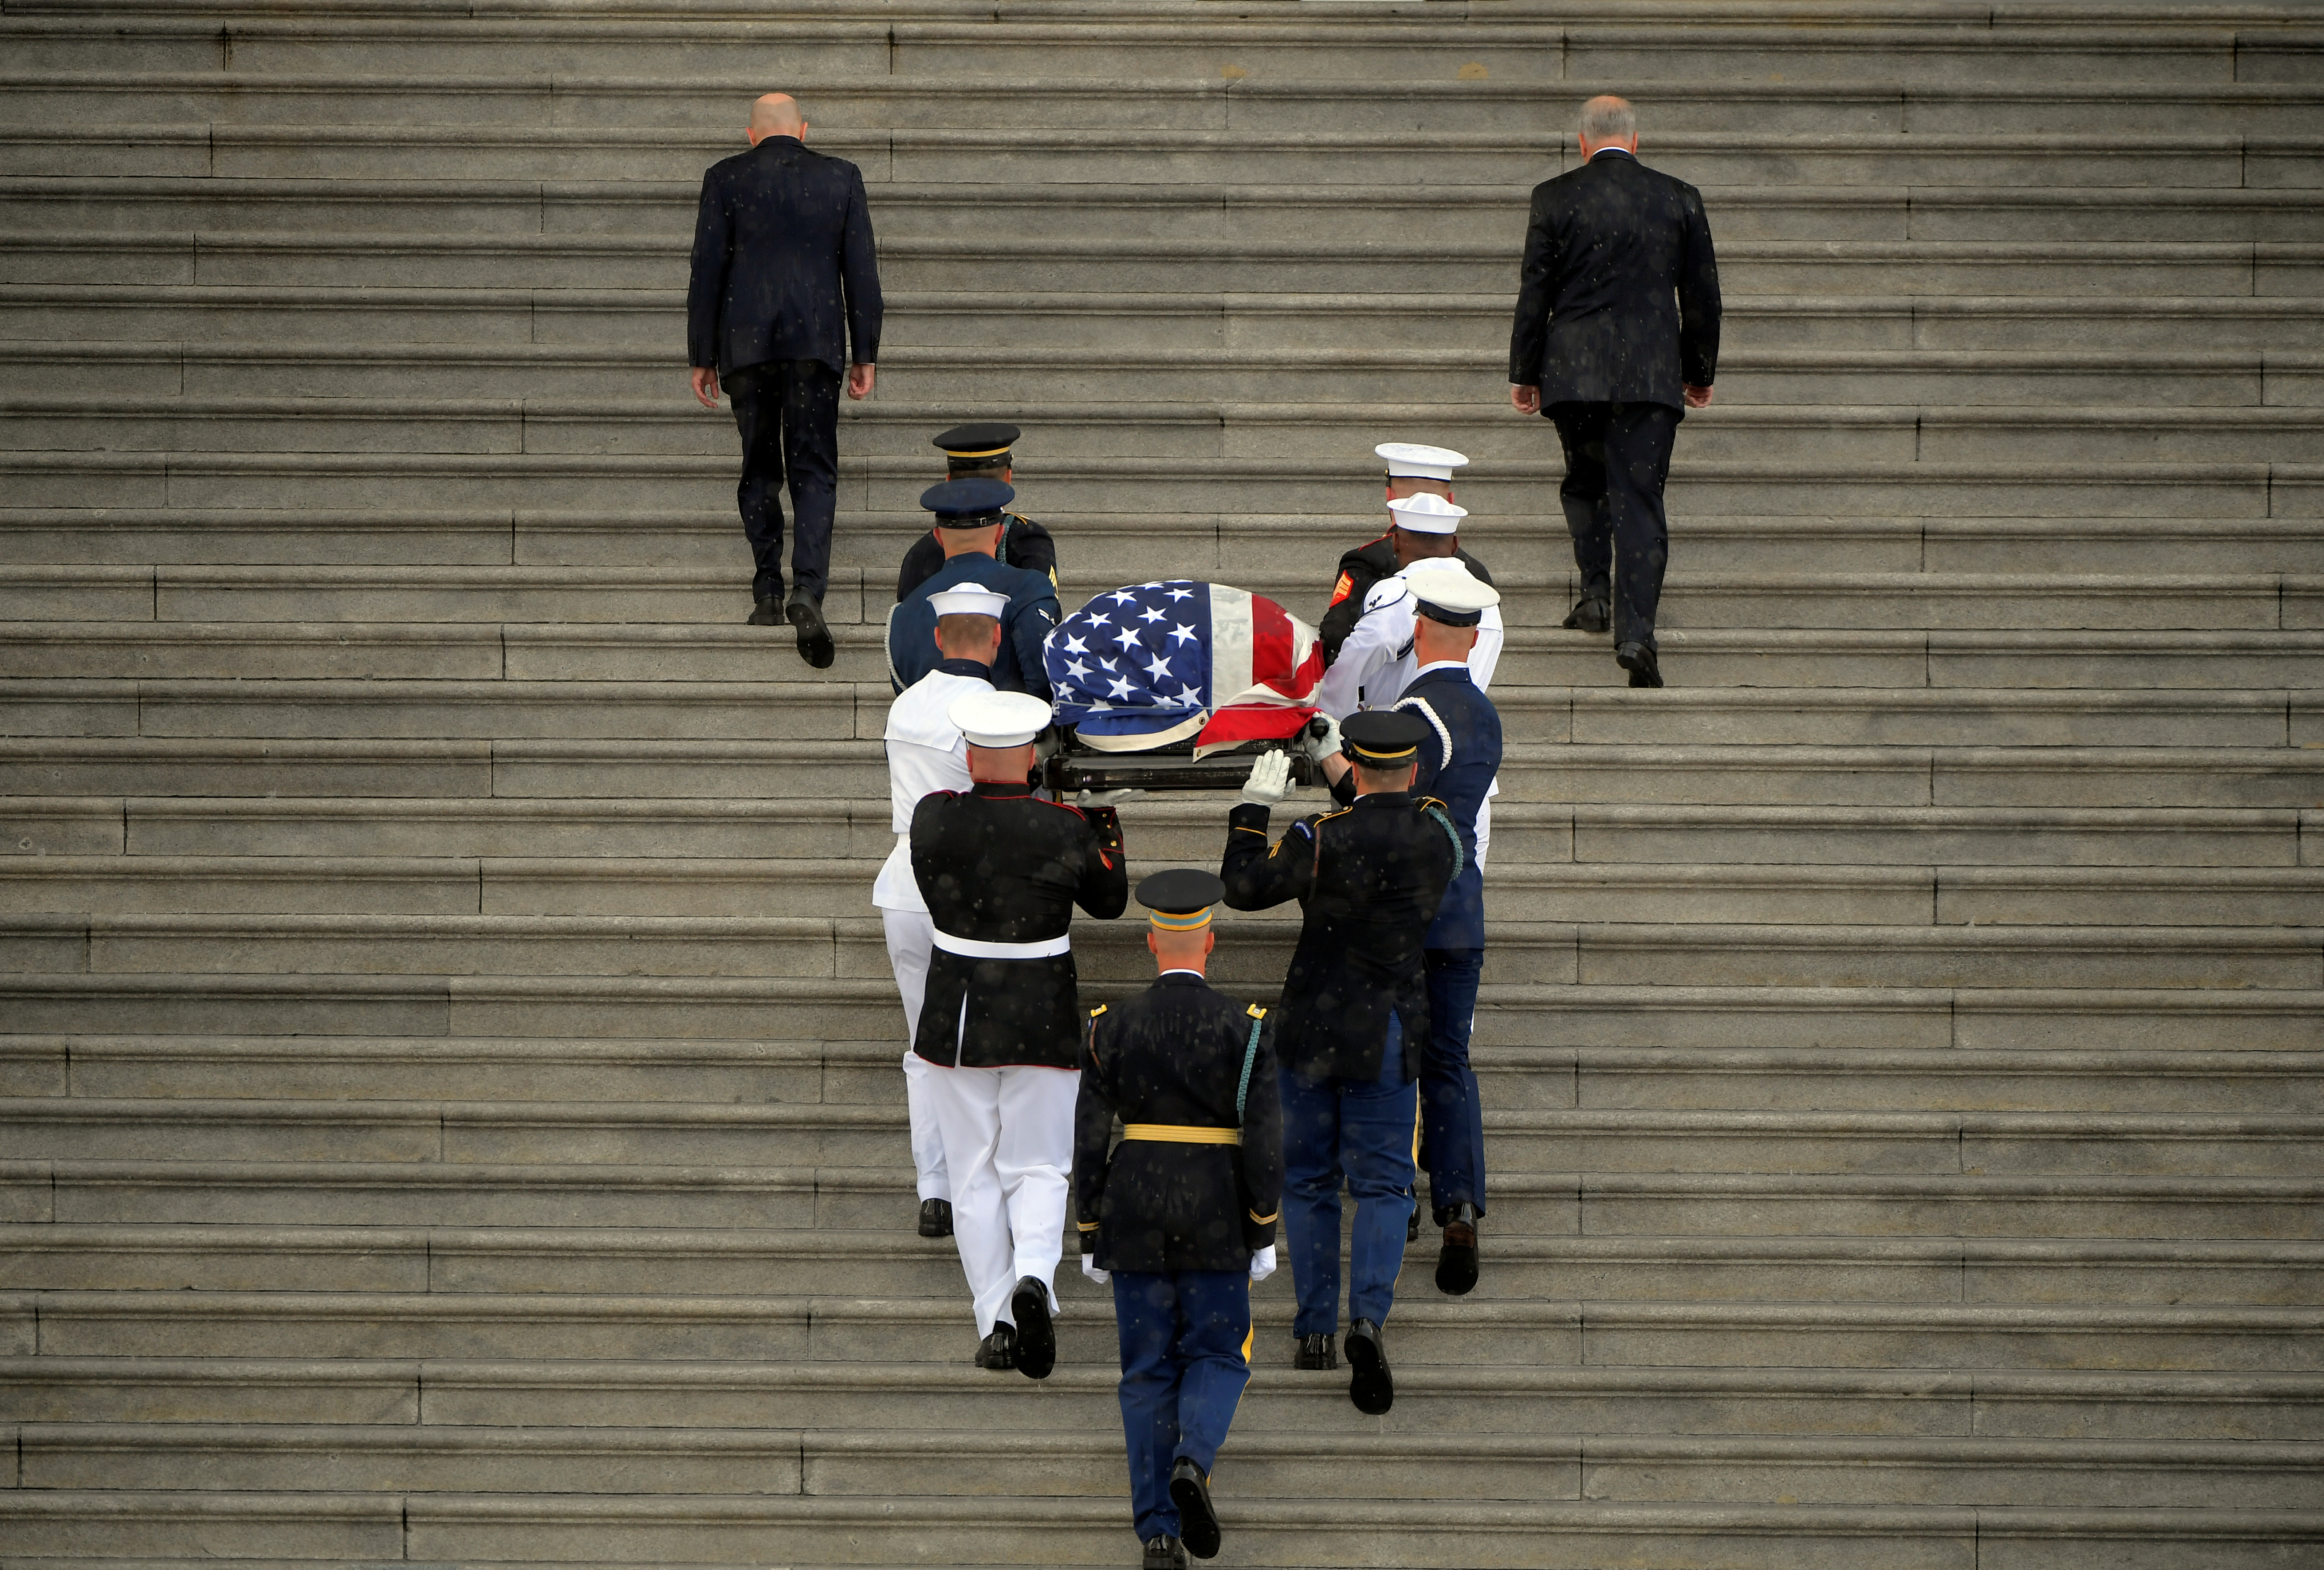 The casket of U.S. Senator John McCain is carried up the steps of the U.S. Capitol in Washington D.C., August 31, 2018. John McDonnell/Pool via REUTERS